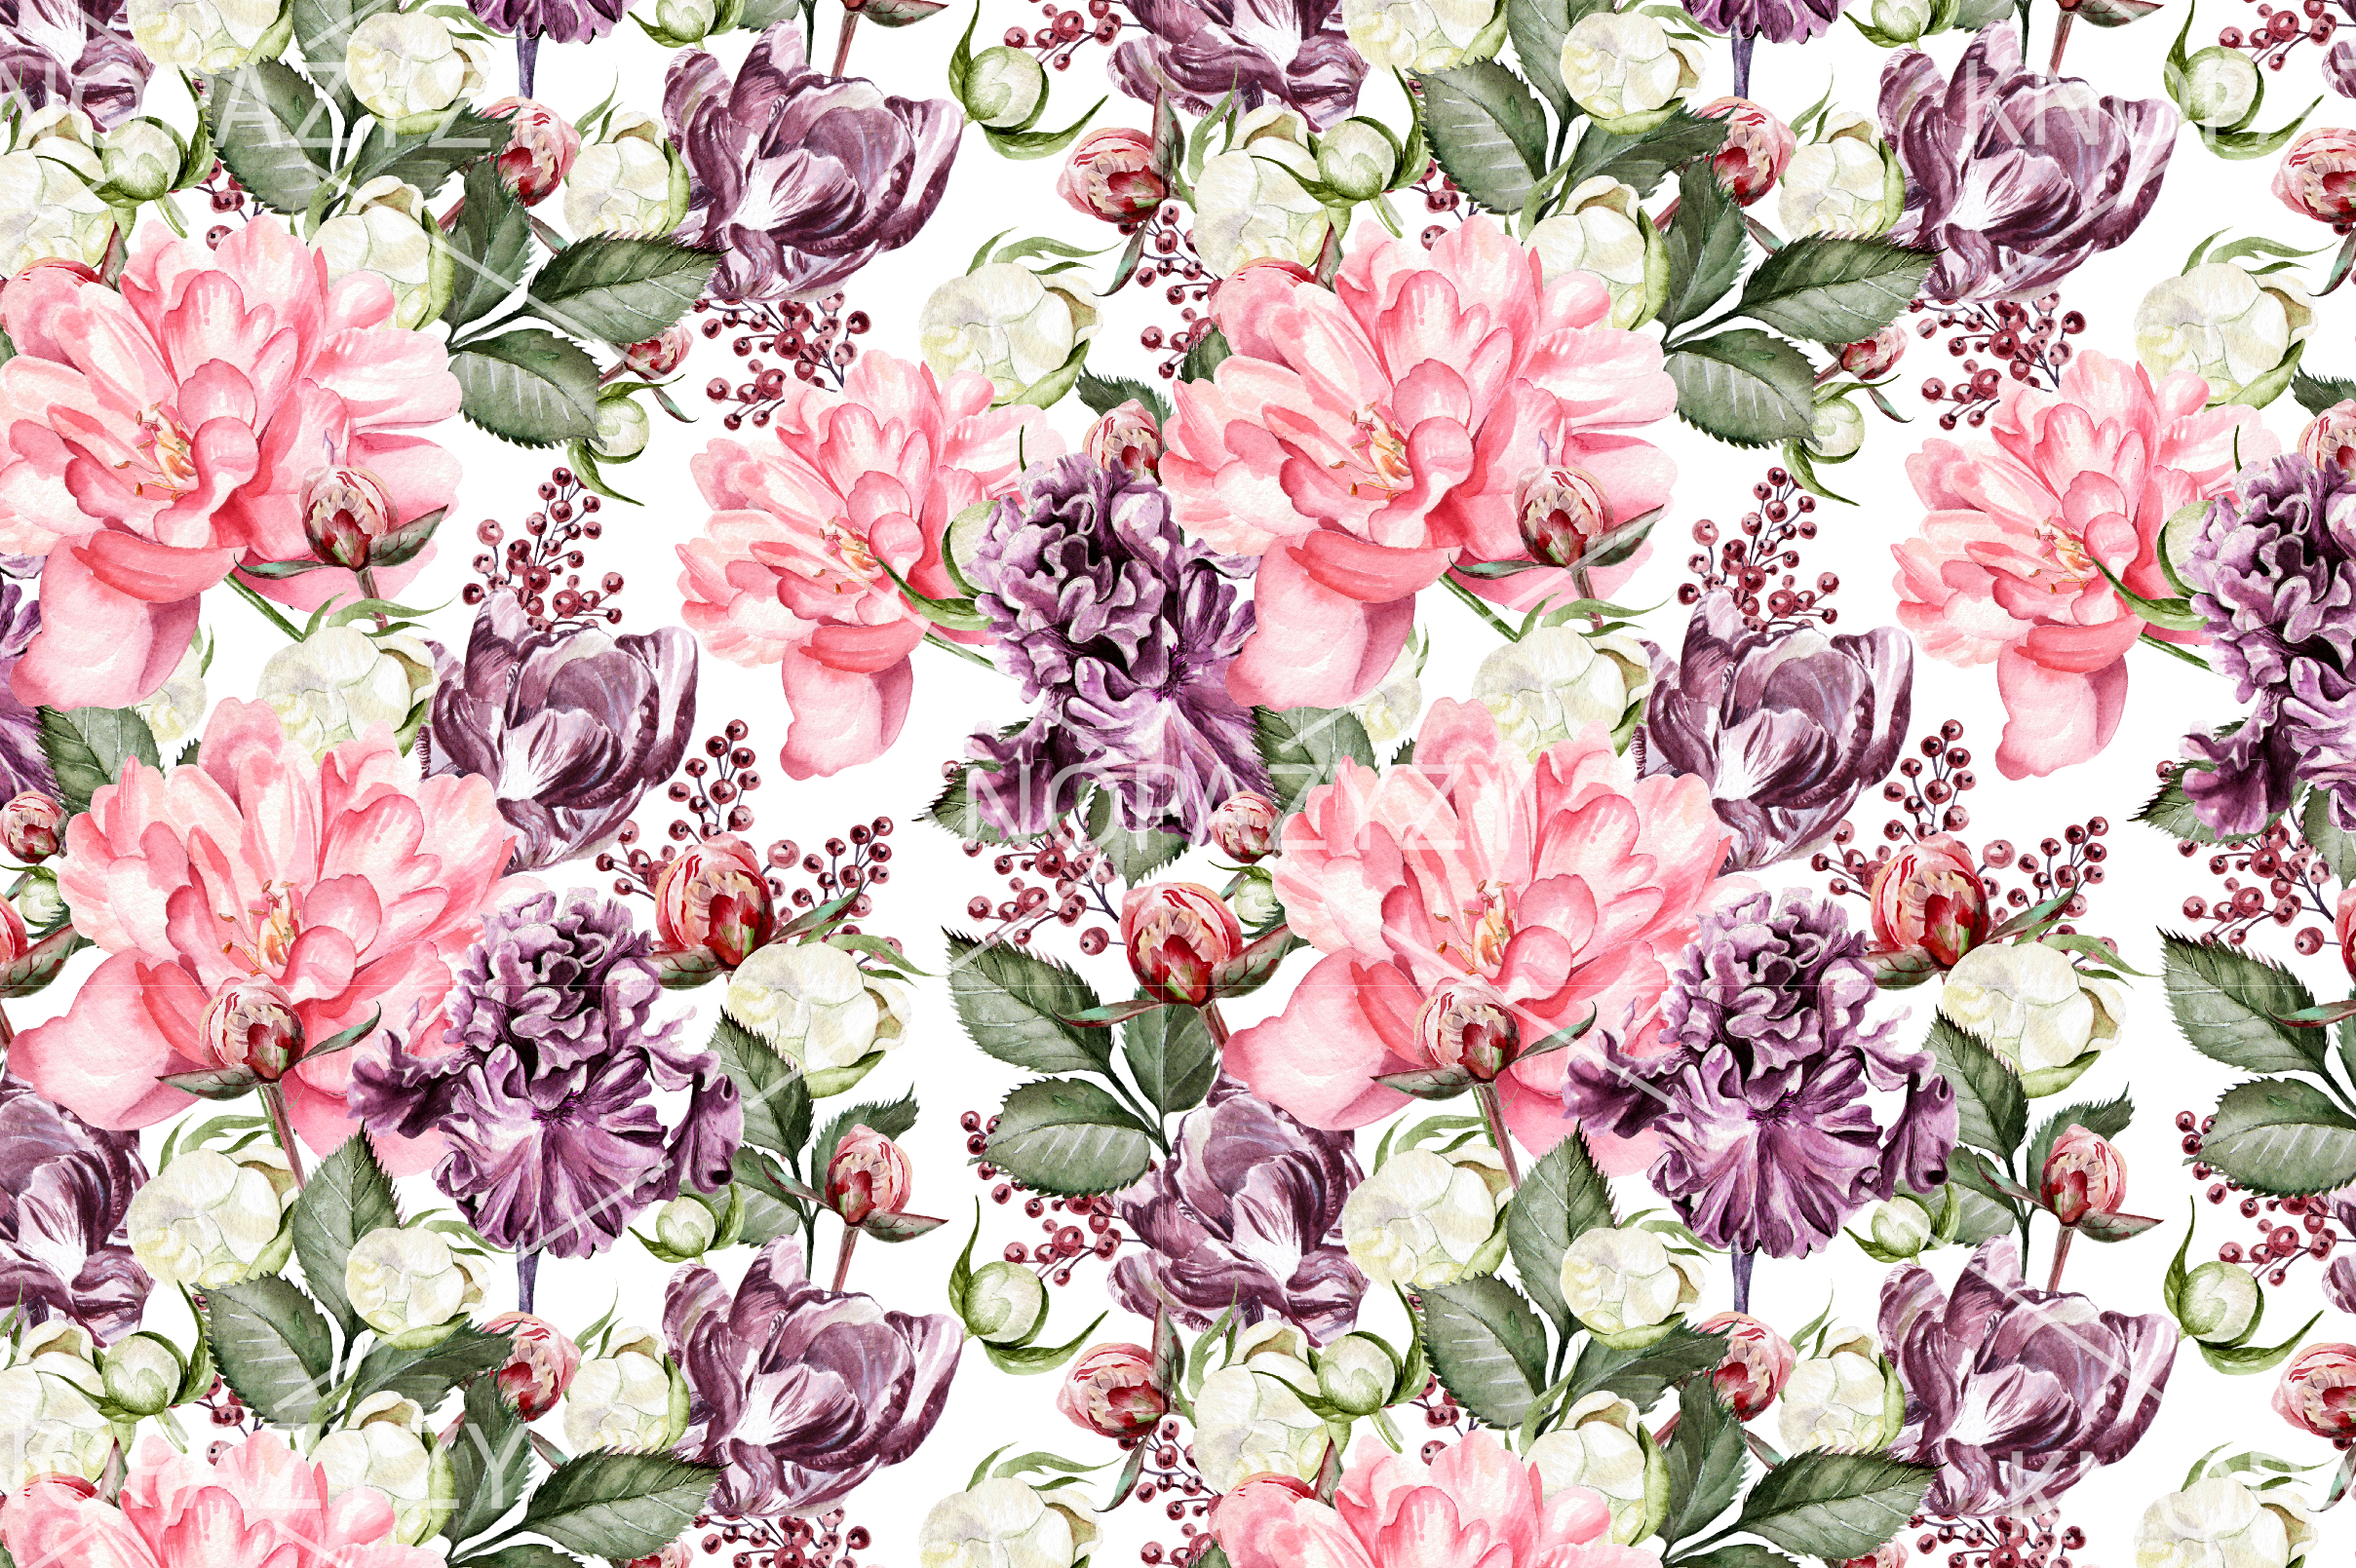 10 Hand Drawn Watercolor Pattern example image 7